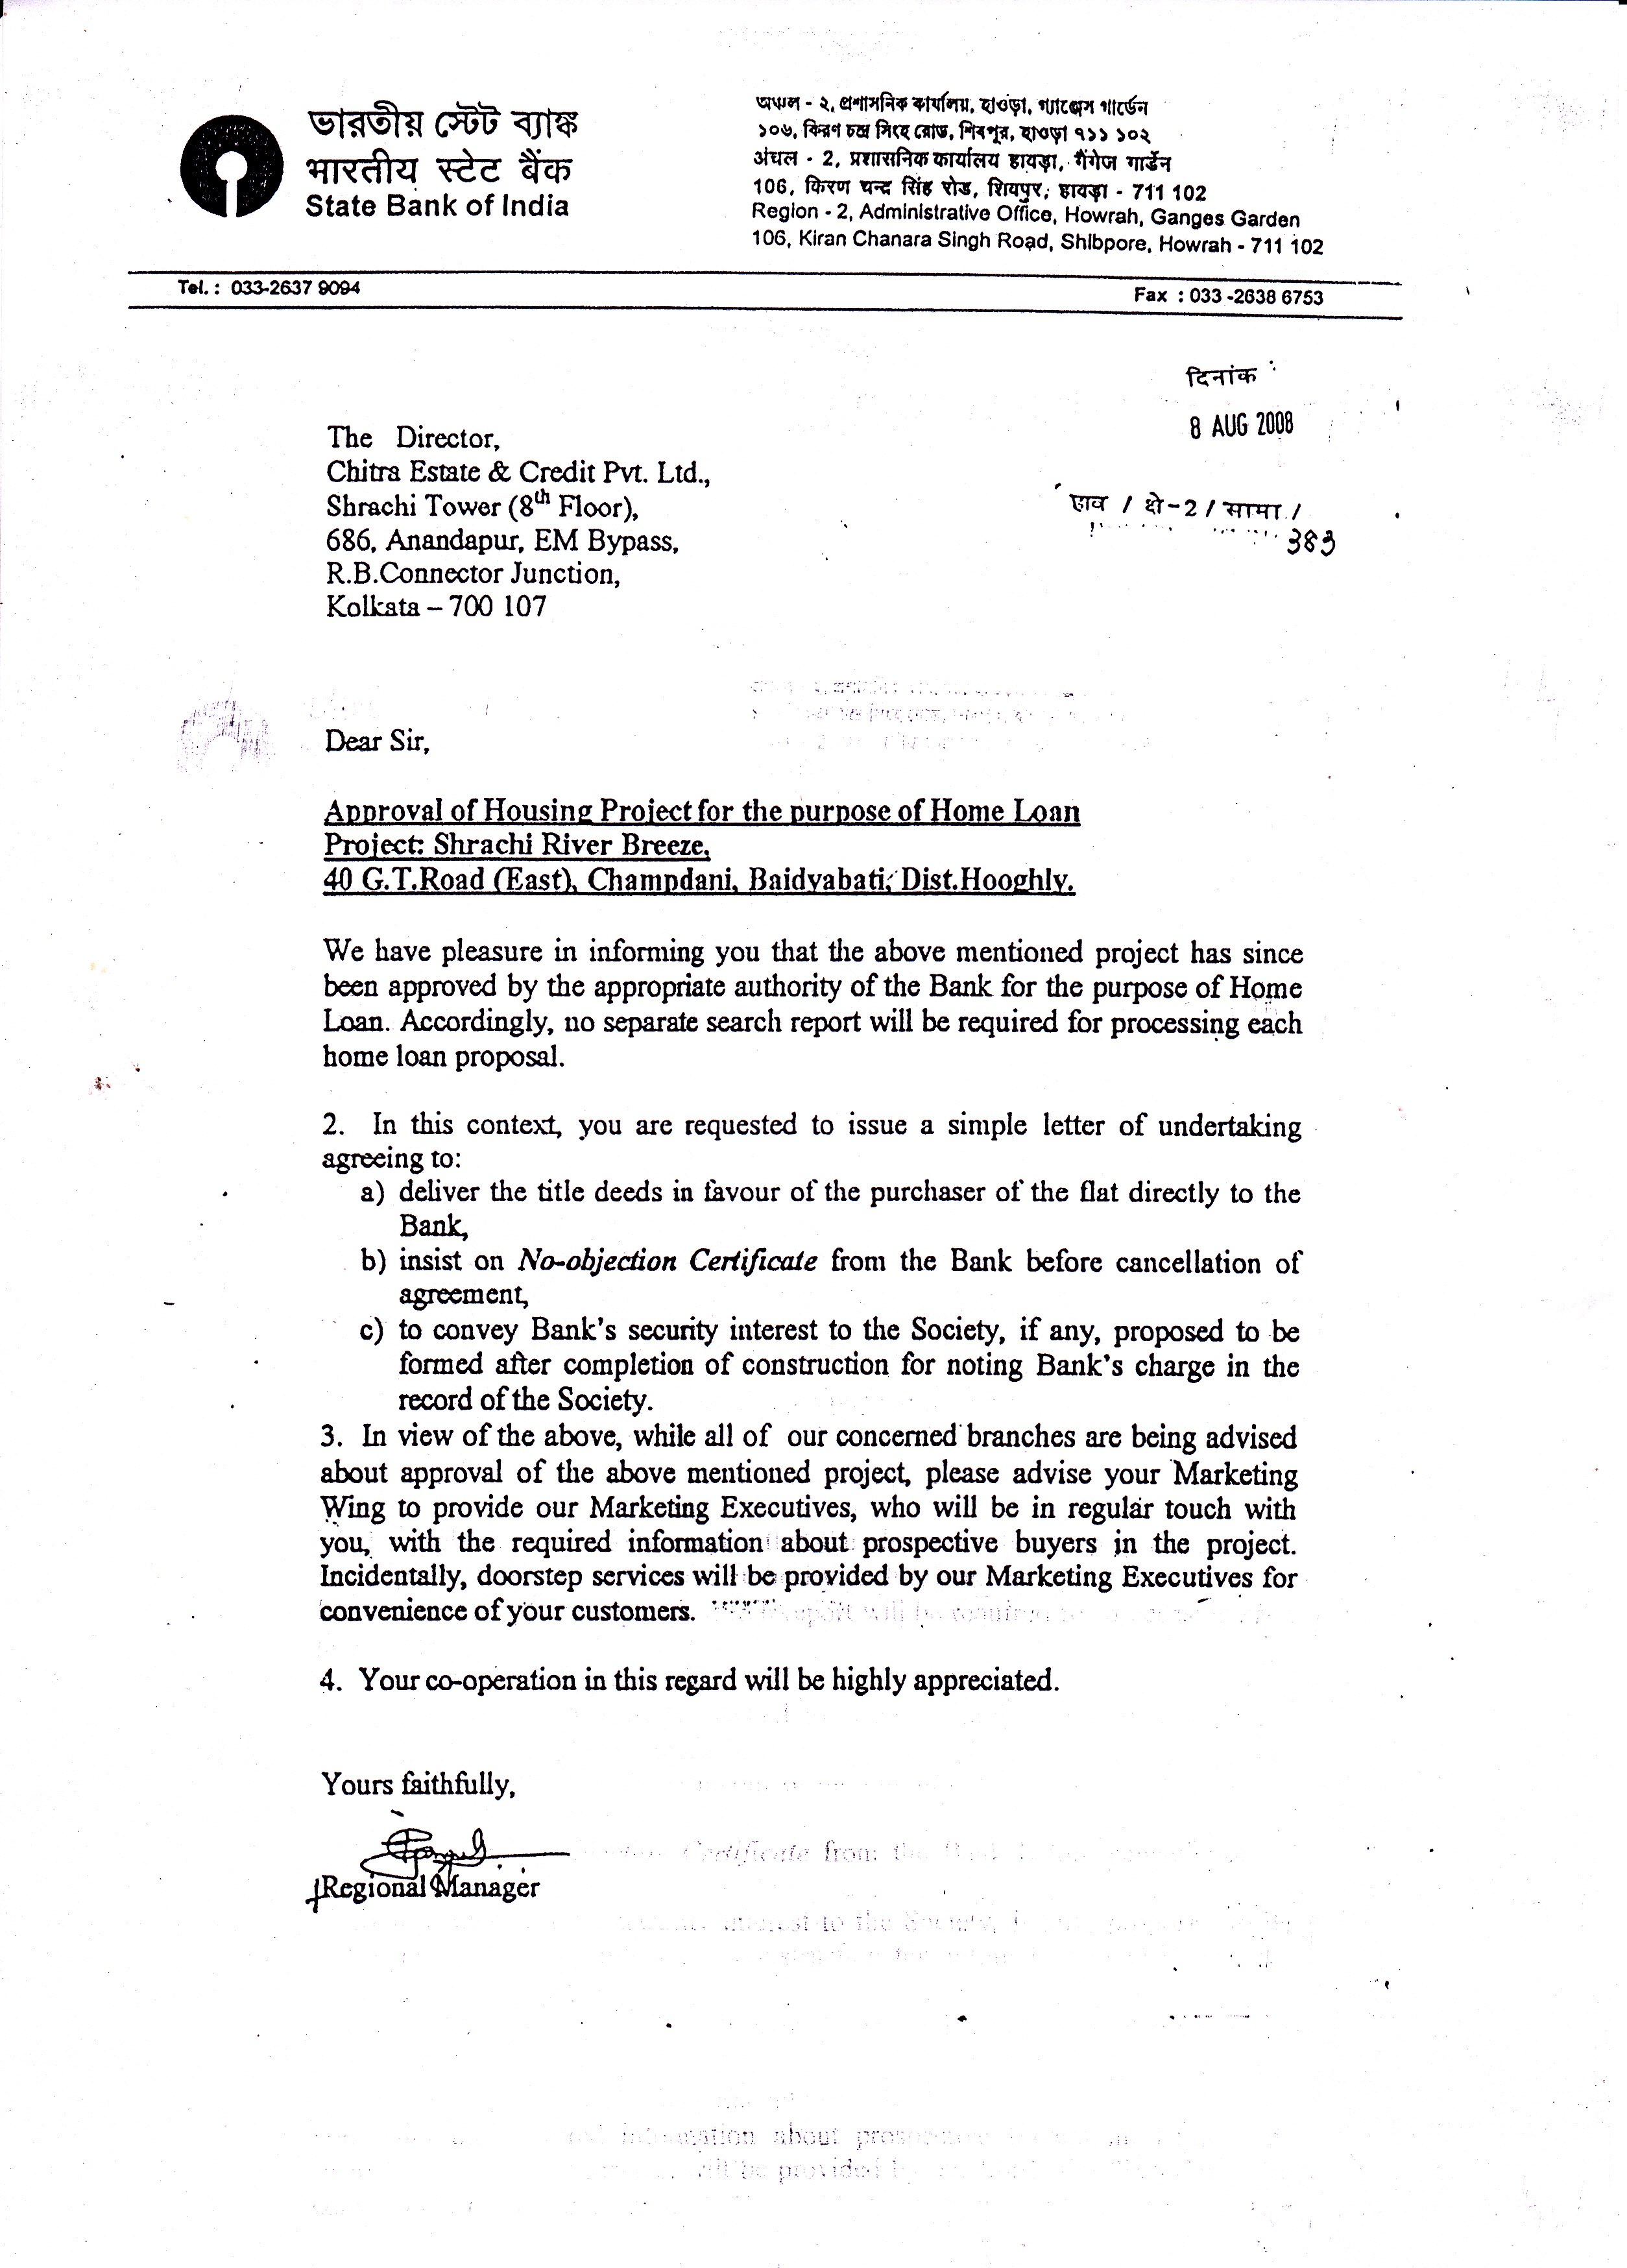 Mortgage Loan Approval Letter Template - Application Letter for A Bank Clothing Business Proposal Letter